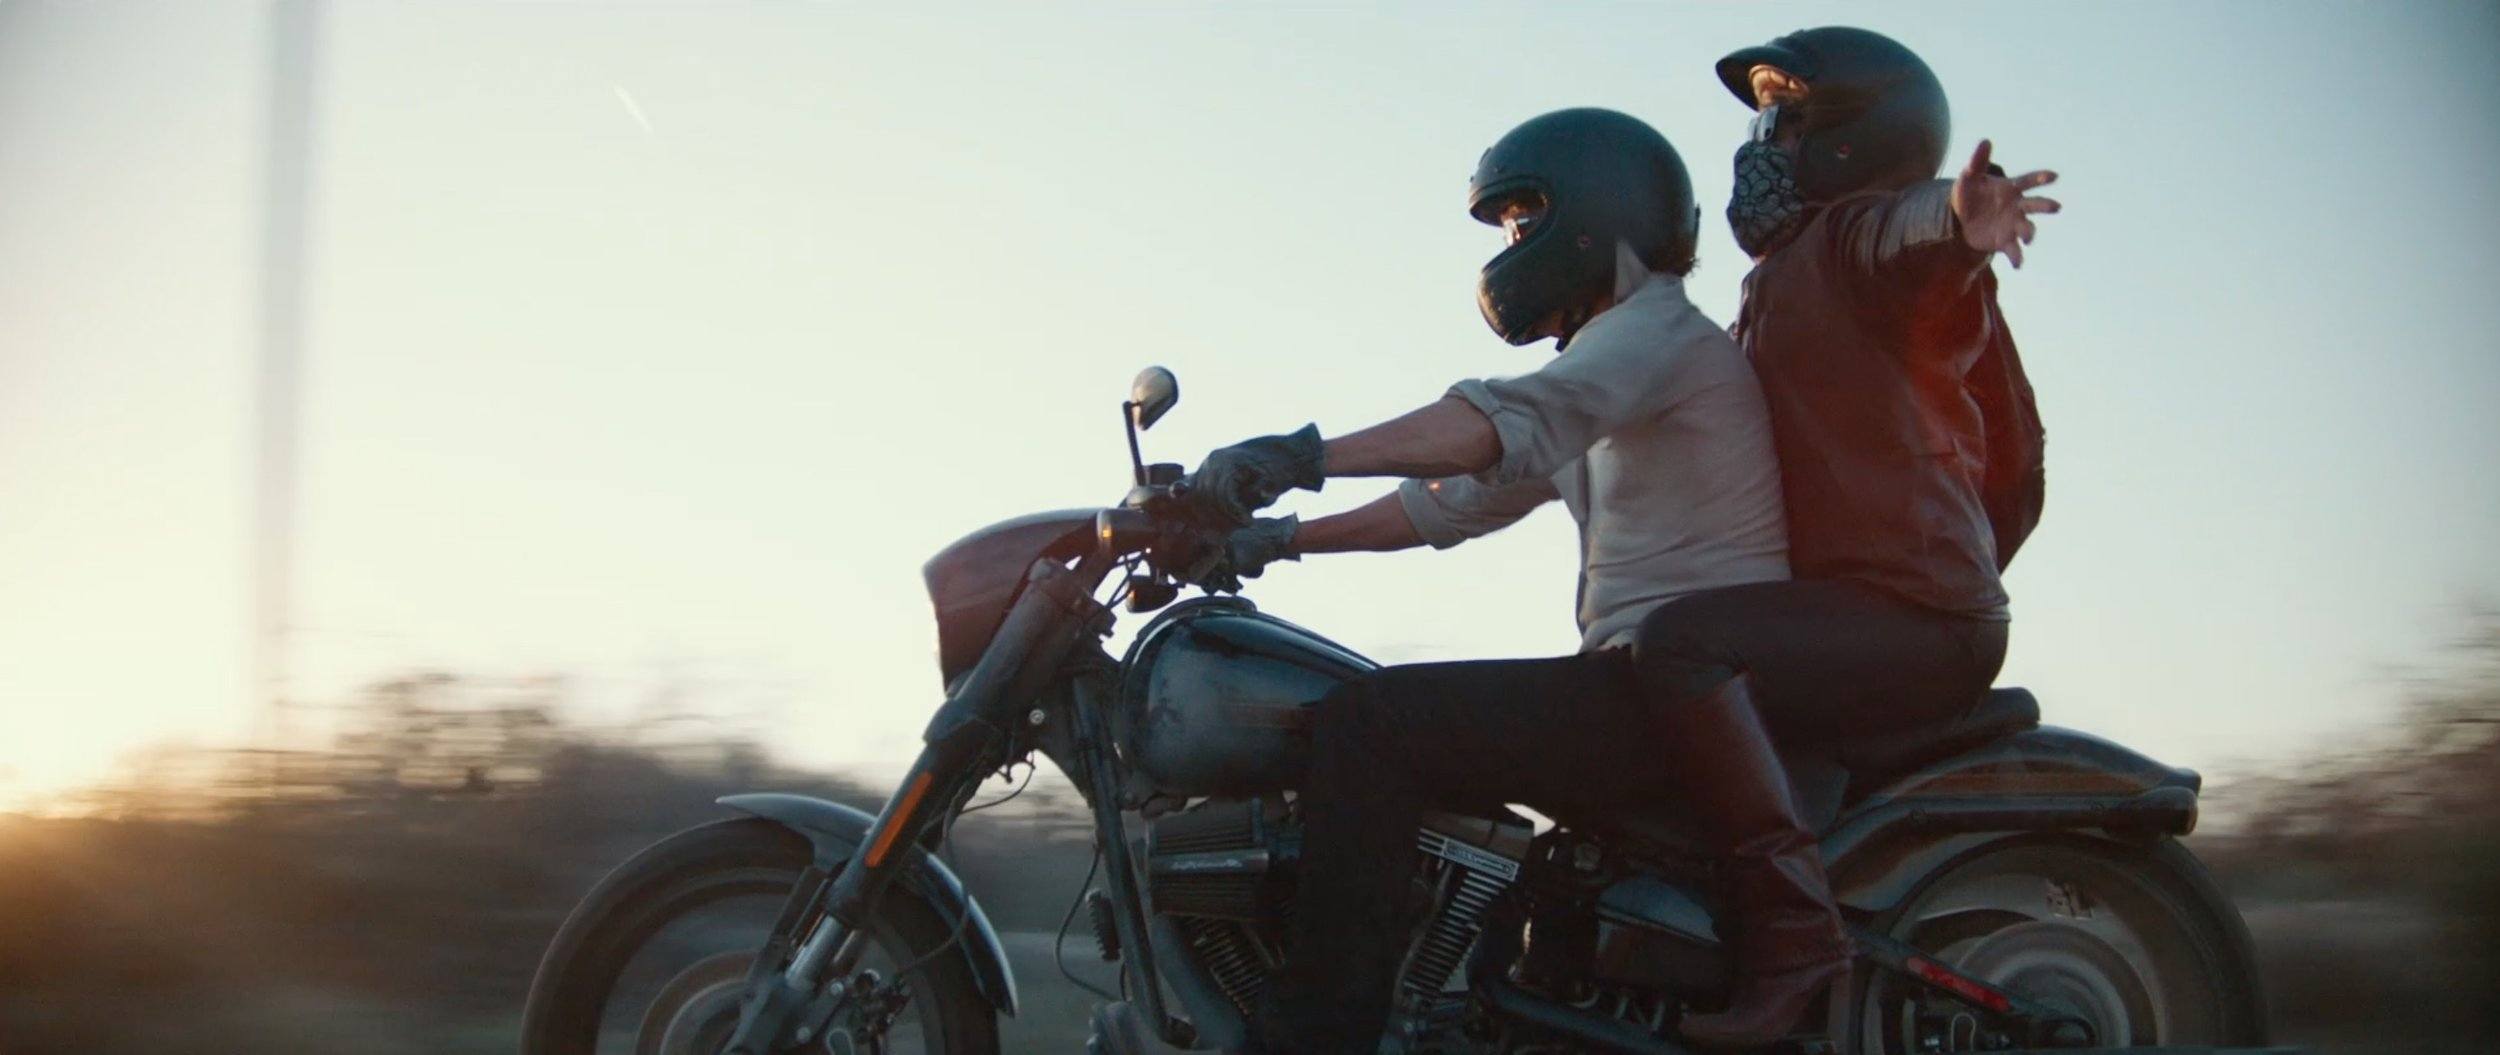 Shots like this expand the scope of the film by contrasting the trailer's story.